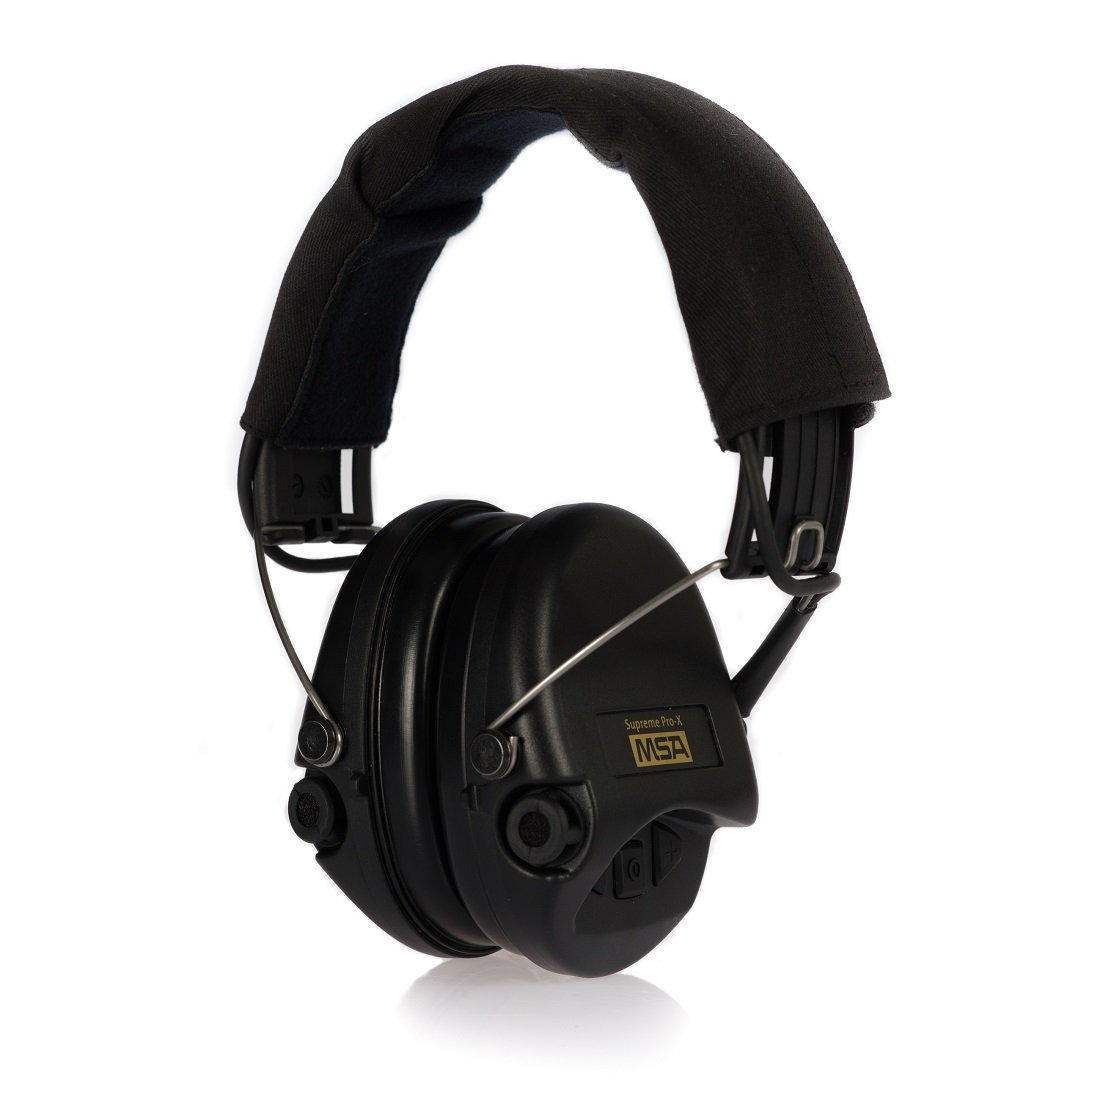 MSA Sordin Supreme Pro X - Standard Edition - Electronic Earmuff with black headband, black cups and foam seals fitted by MSA Sordin